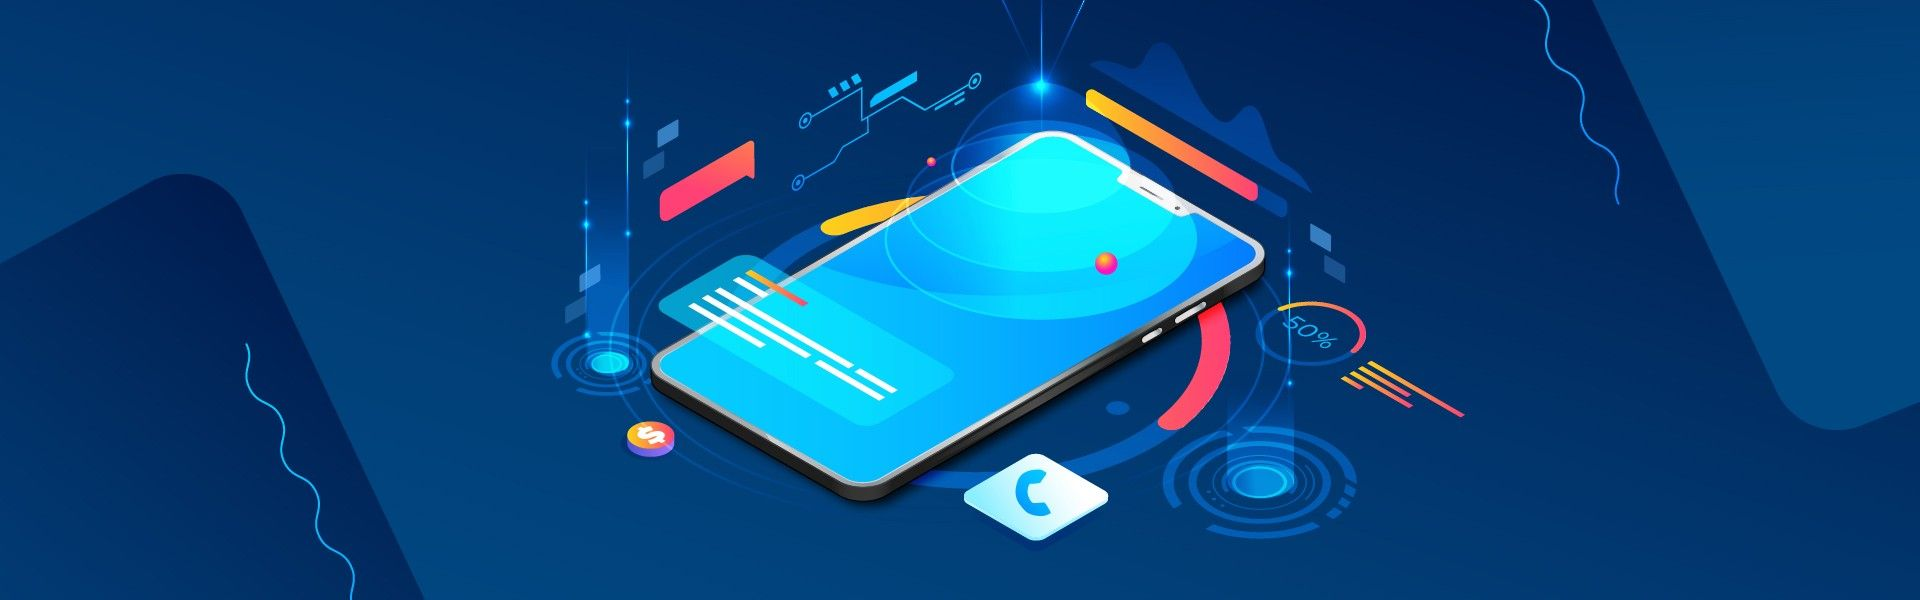 What Is a Super App? Reasons for Success